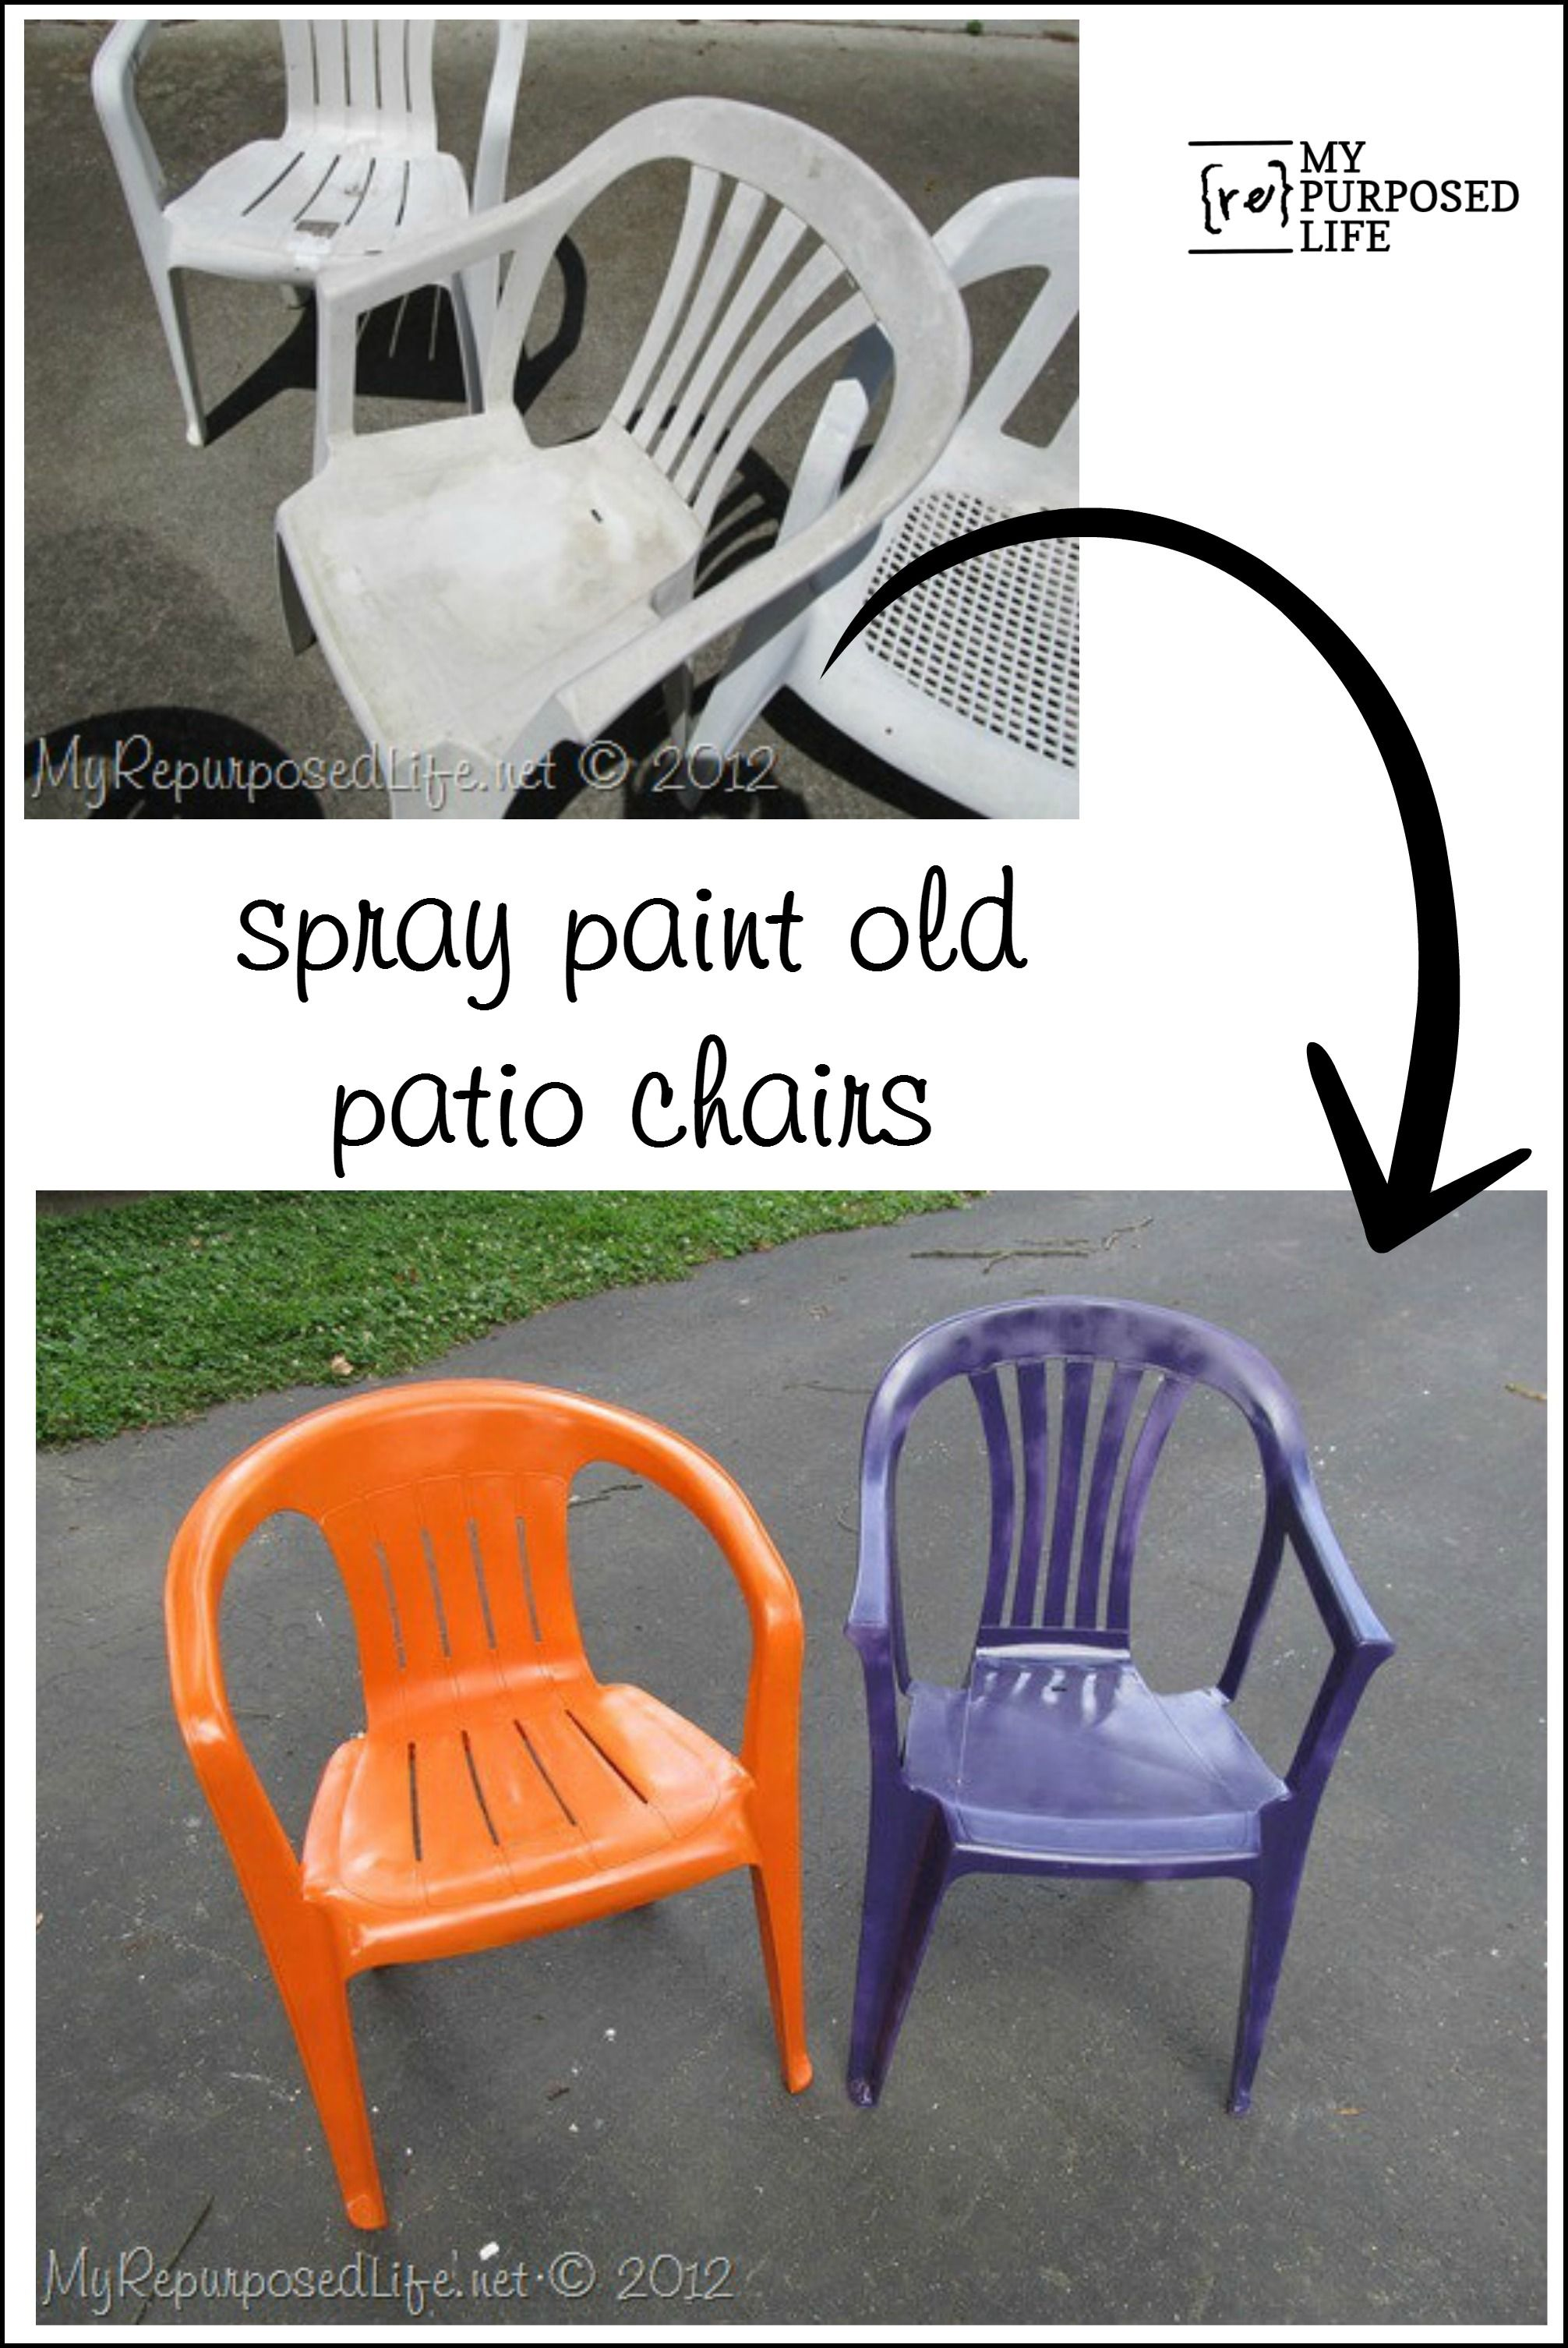 How To Spray Paint Plastic Chairs You Know Those Old White Chairs You Have They Are Pitte Painting Plastic Chairs Painting Plastic Furniture Painting Plastic